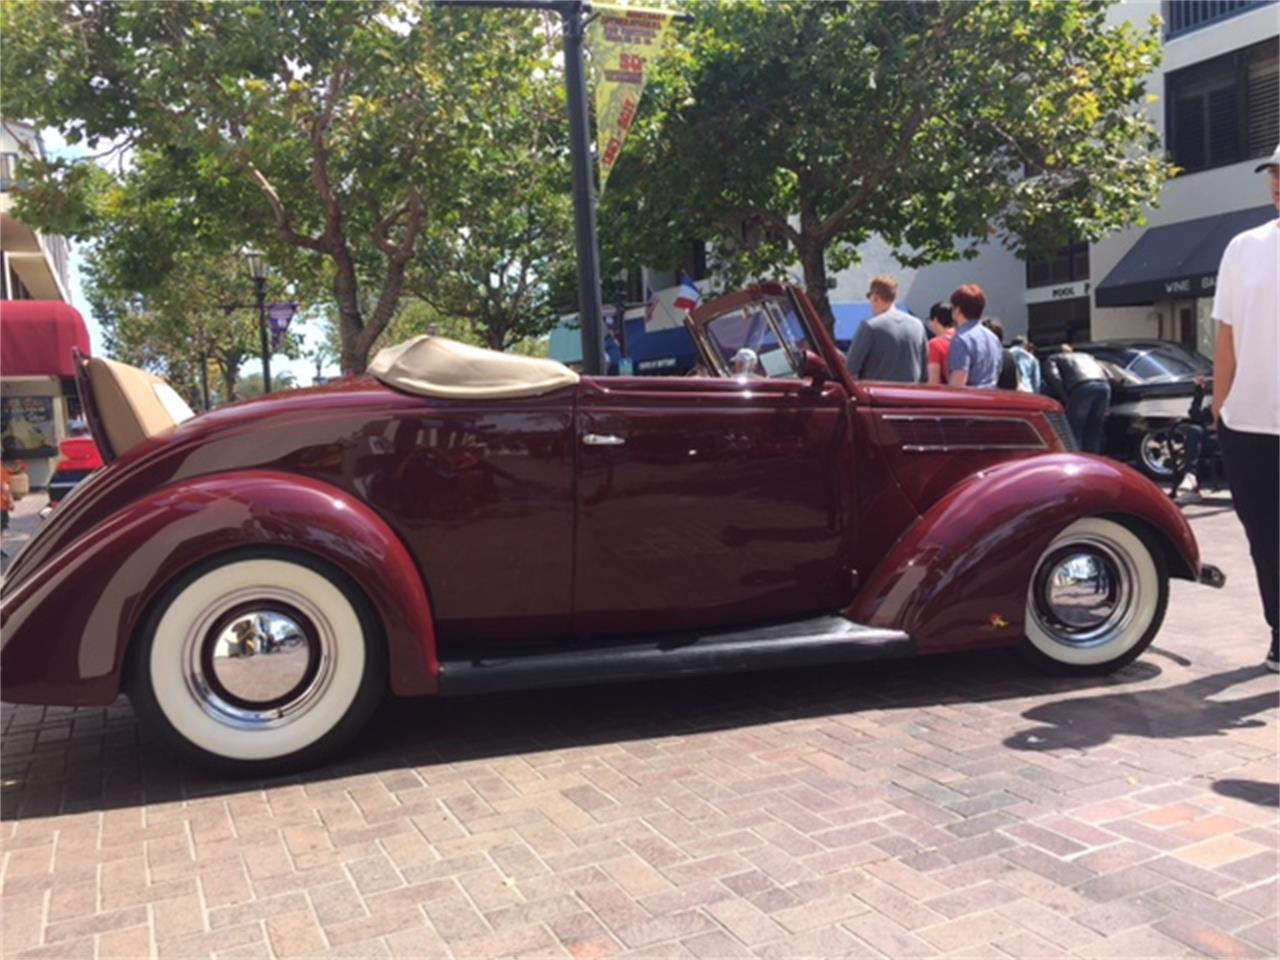 Large Picture of Classic '37 Ford Cabriolet located in Paso robles California - $55,000.00 - QTU3